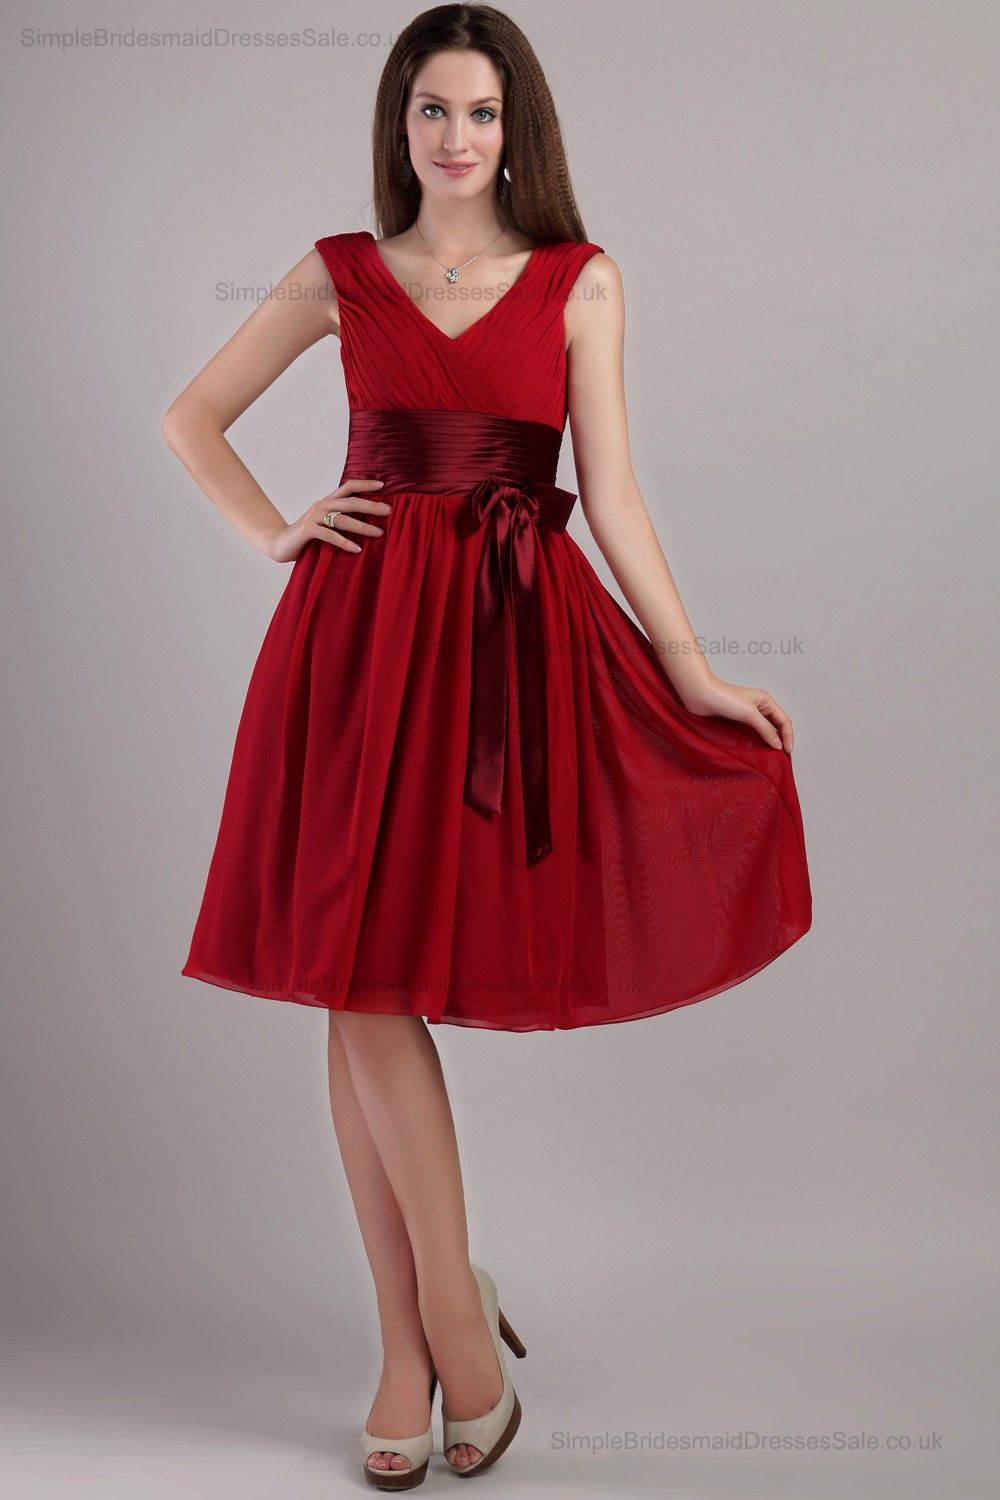 Red Maid of Honor Dresses for Girls